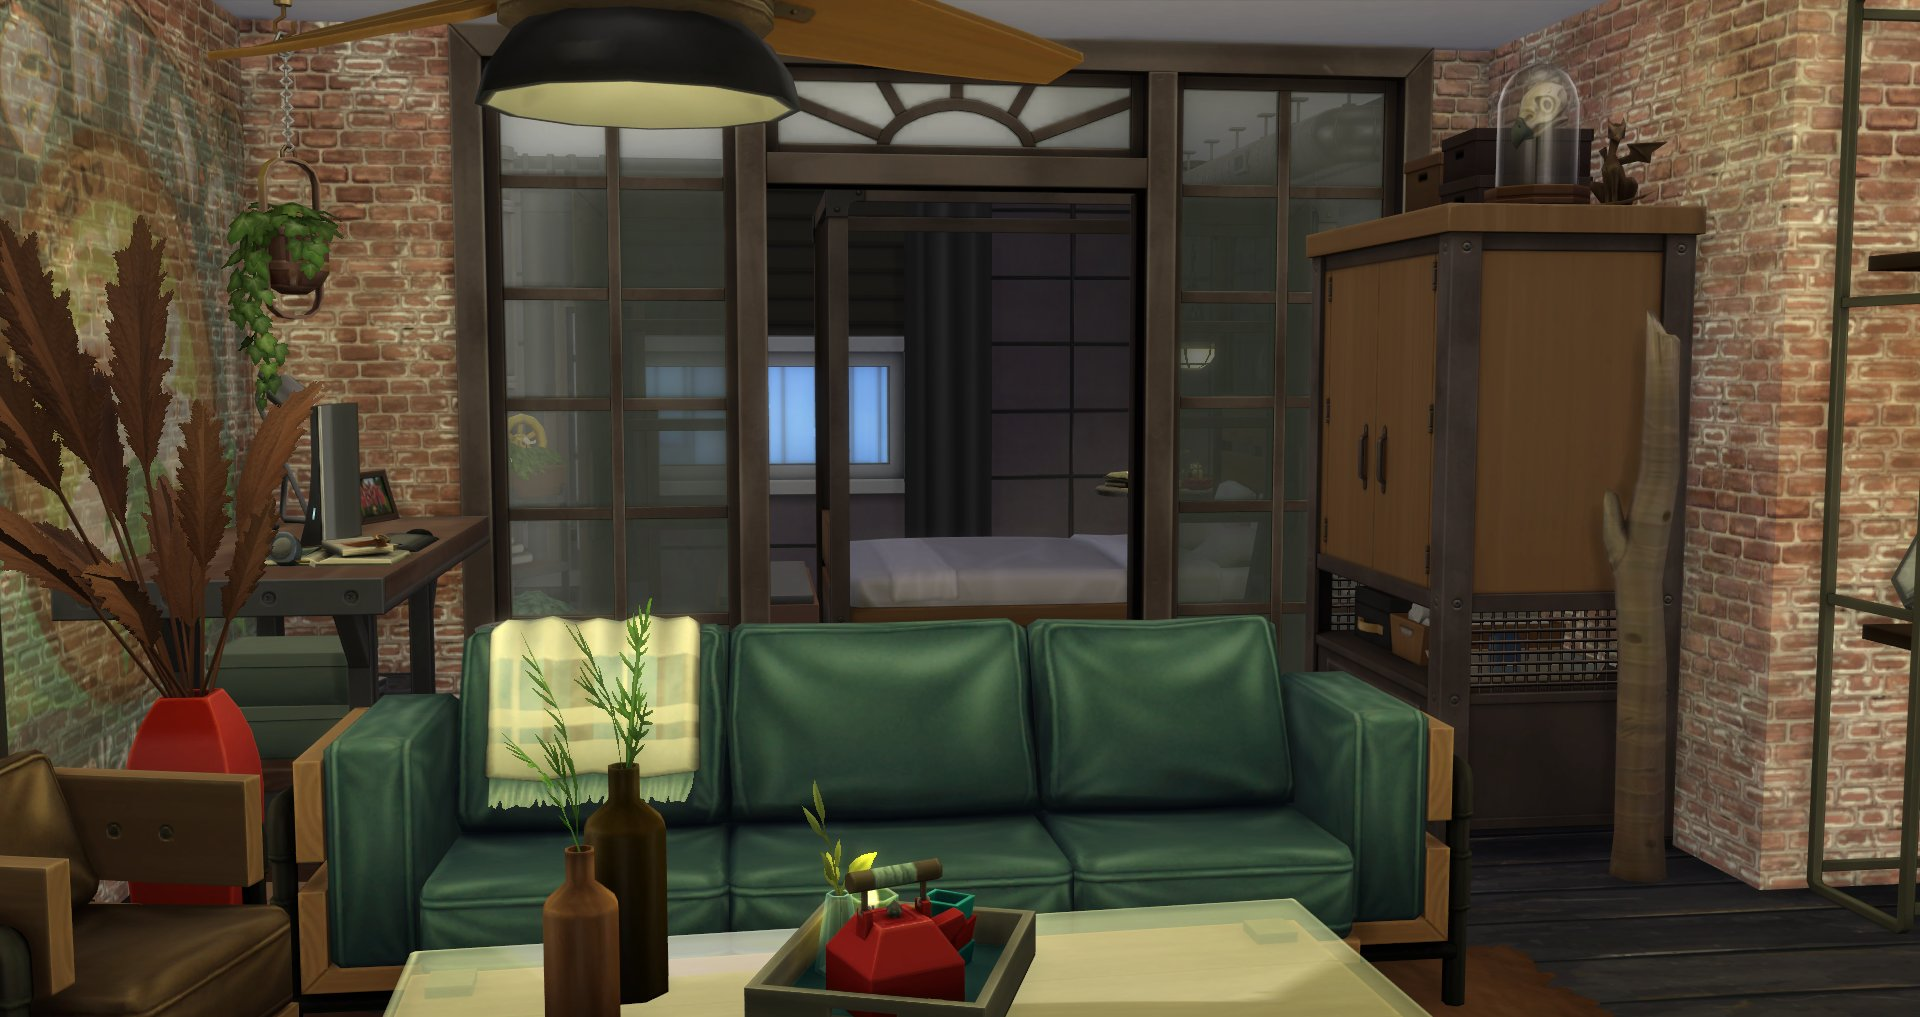 The Sims 4 Industrial Kit - Living Room Leather and Wood Couch